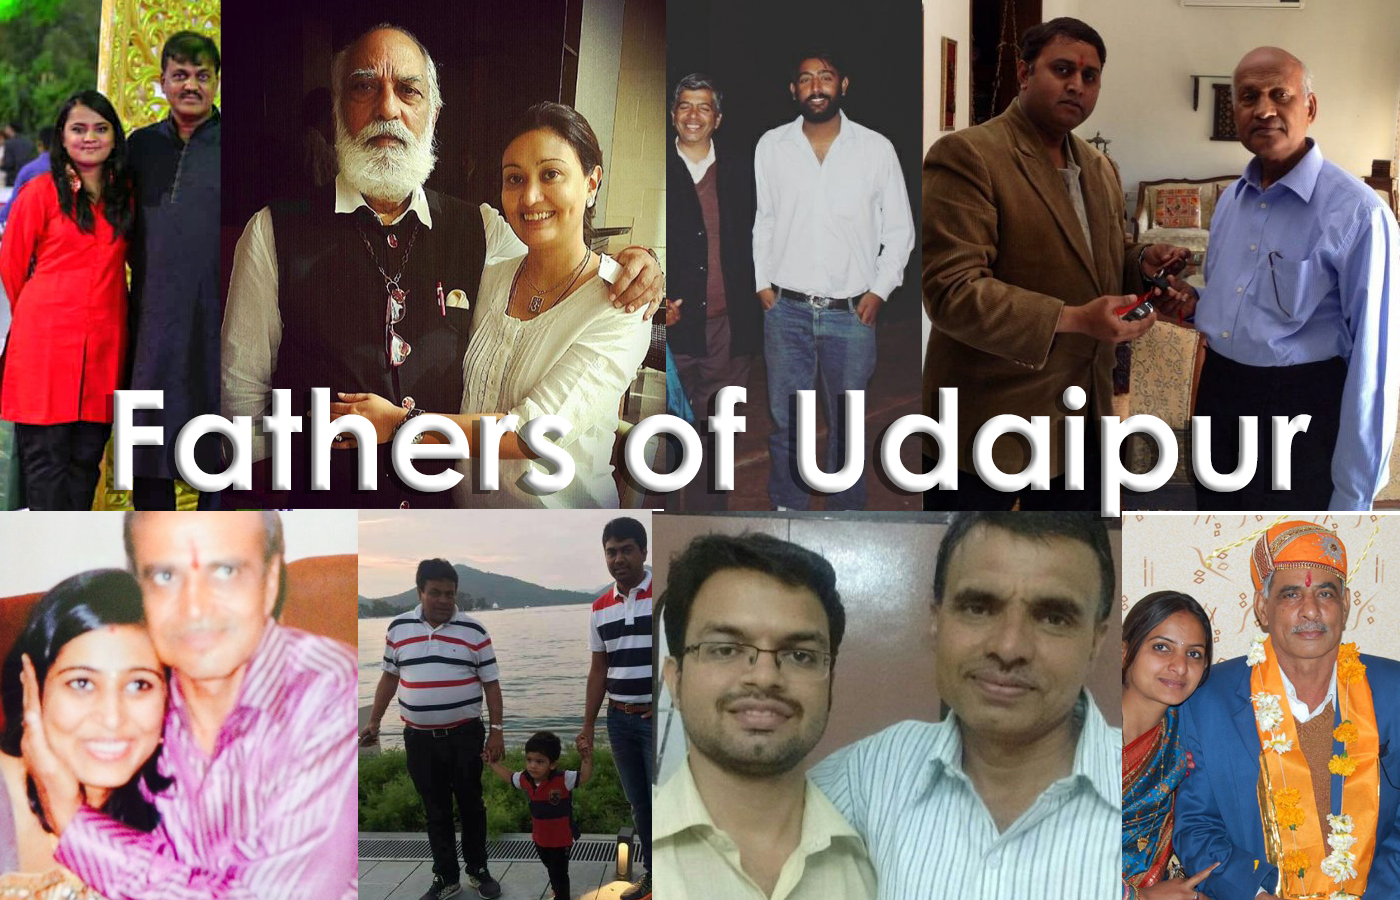 fathers of udaipur